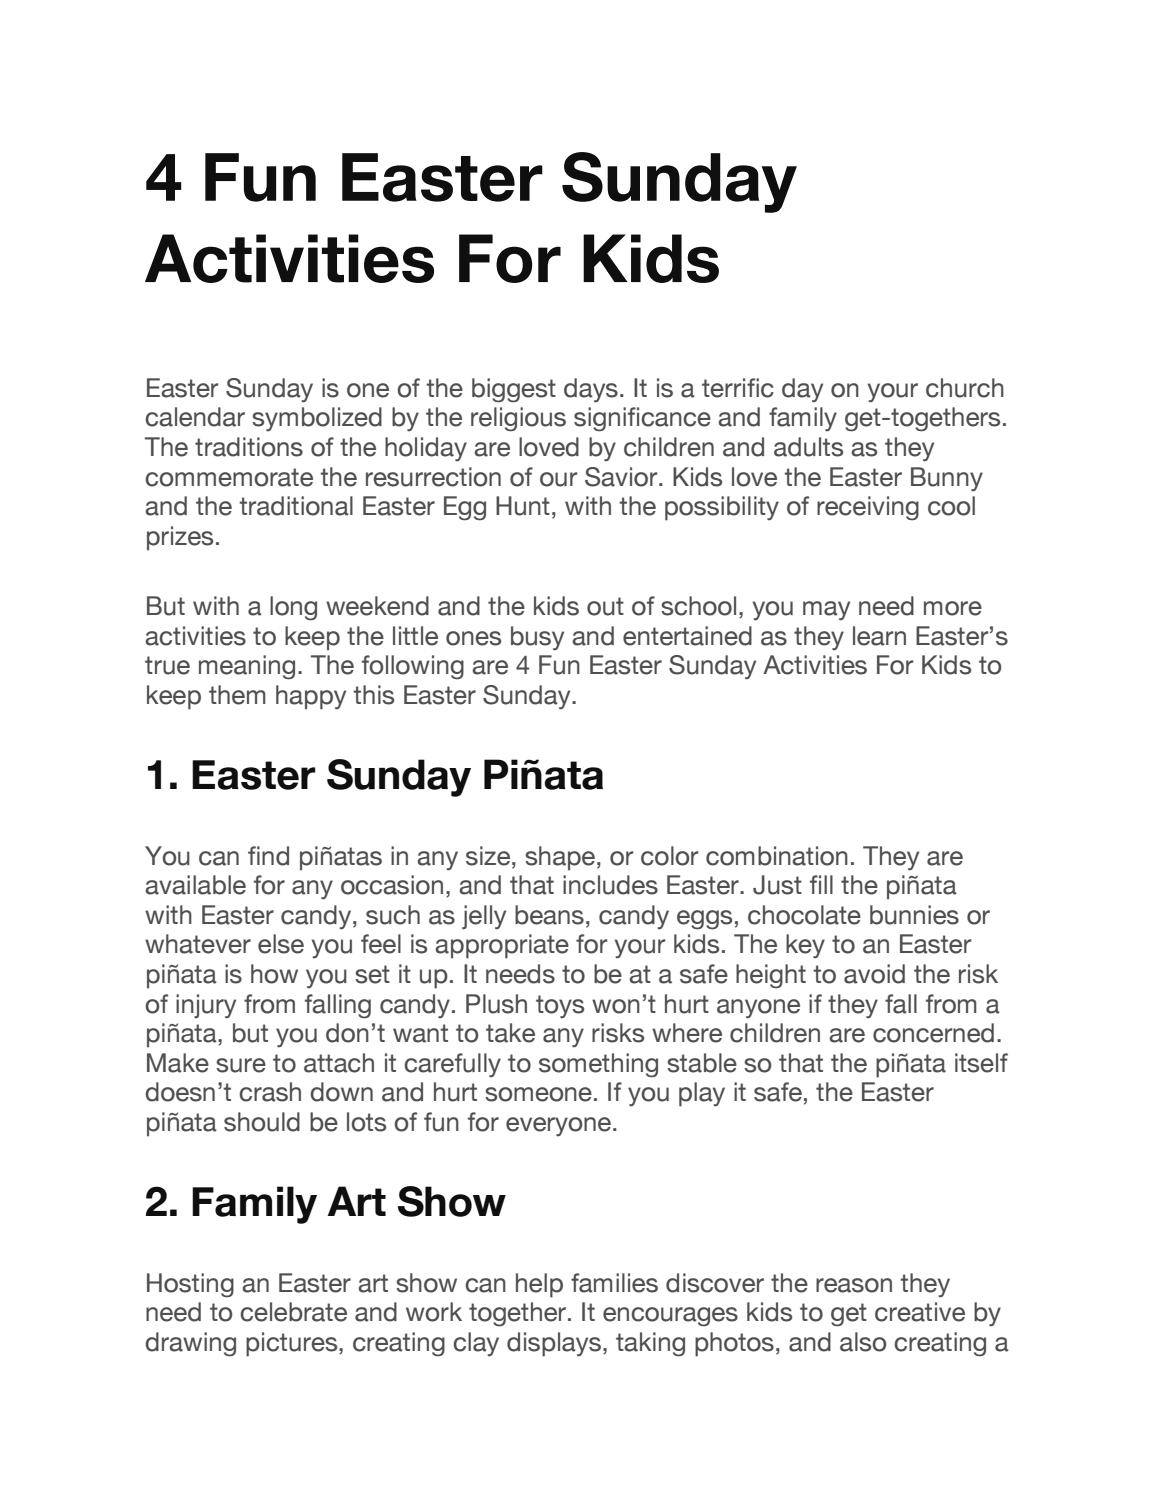 4 Fun Easter Sunday Activities For Kids By Orlando Coupons Issuu